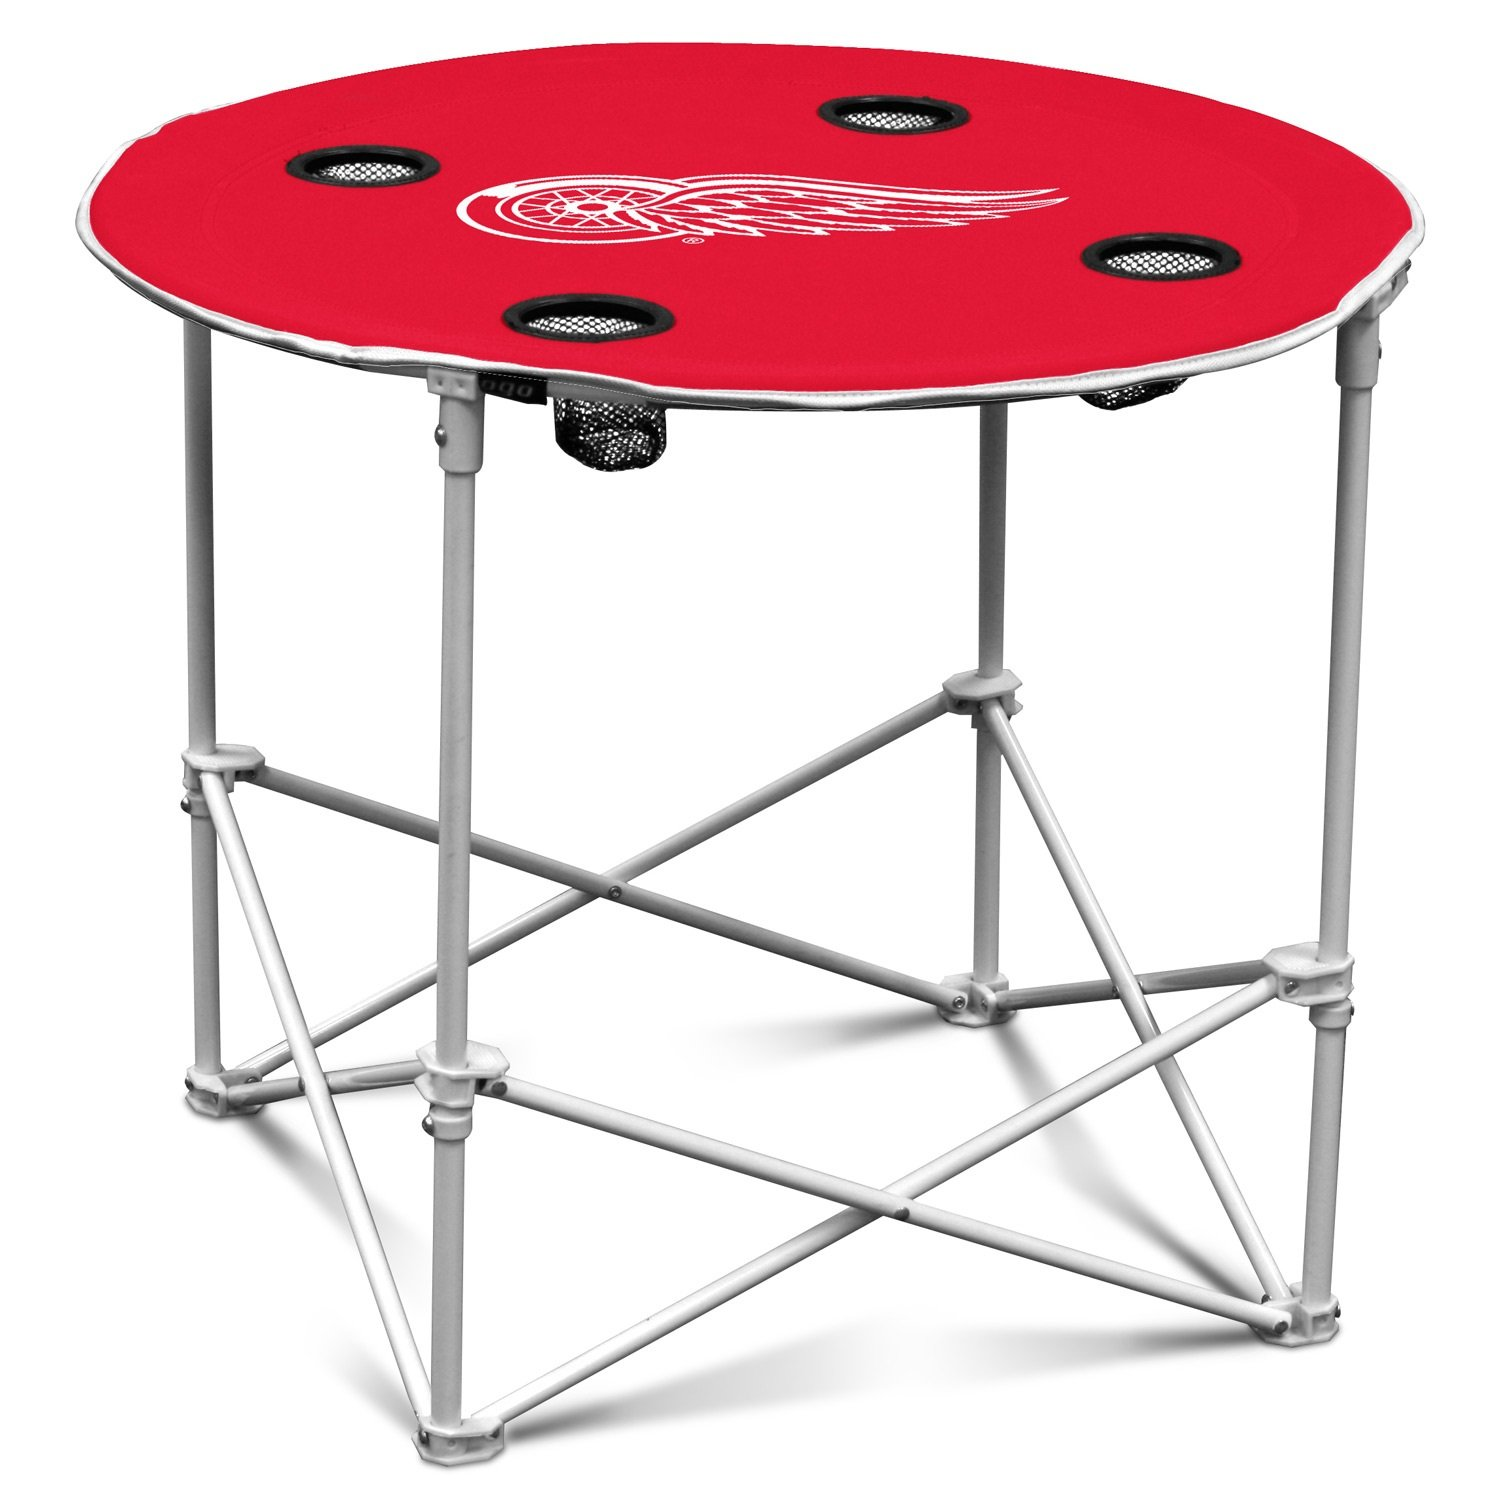 round table legs logo detroit red wings camp outside nic accent outdoor camping folding bag tall inch end big chair skinny sofa purple side furniture choice dining counter height